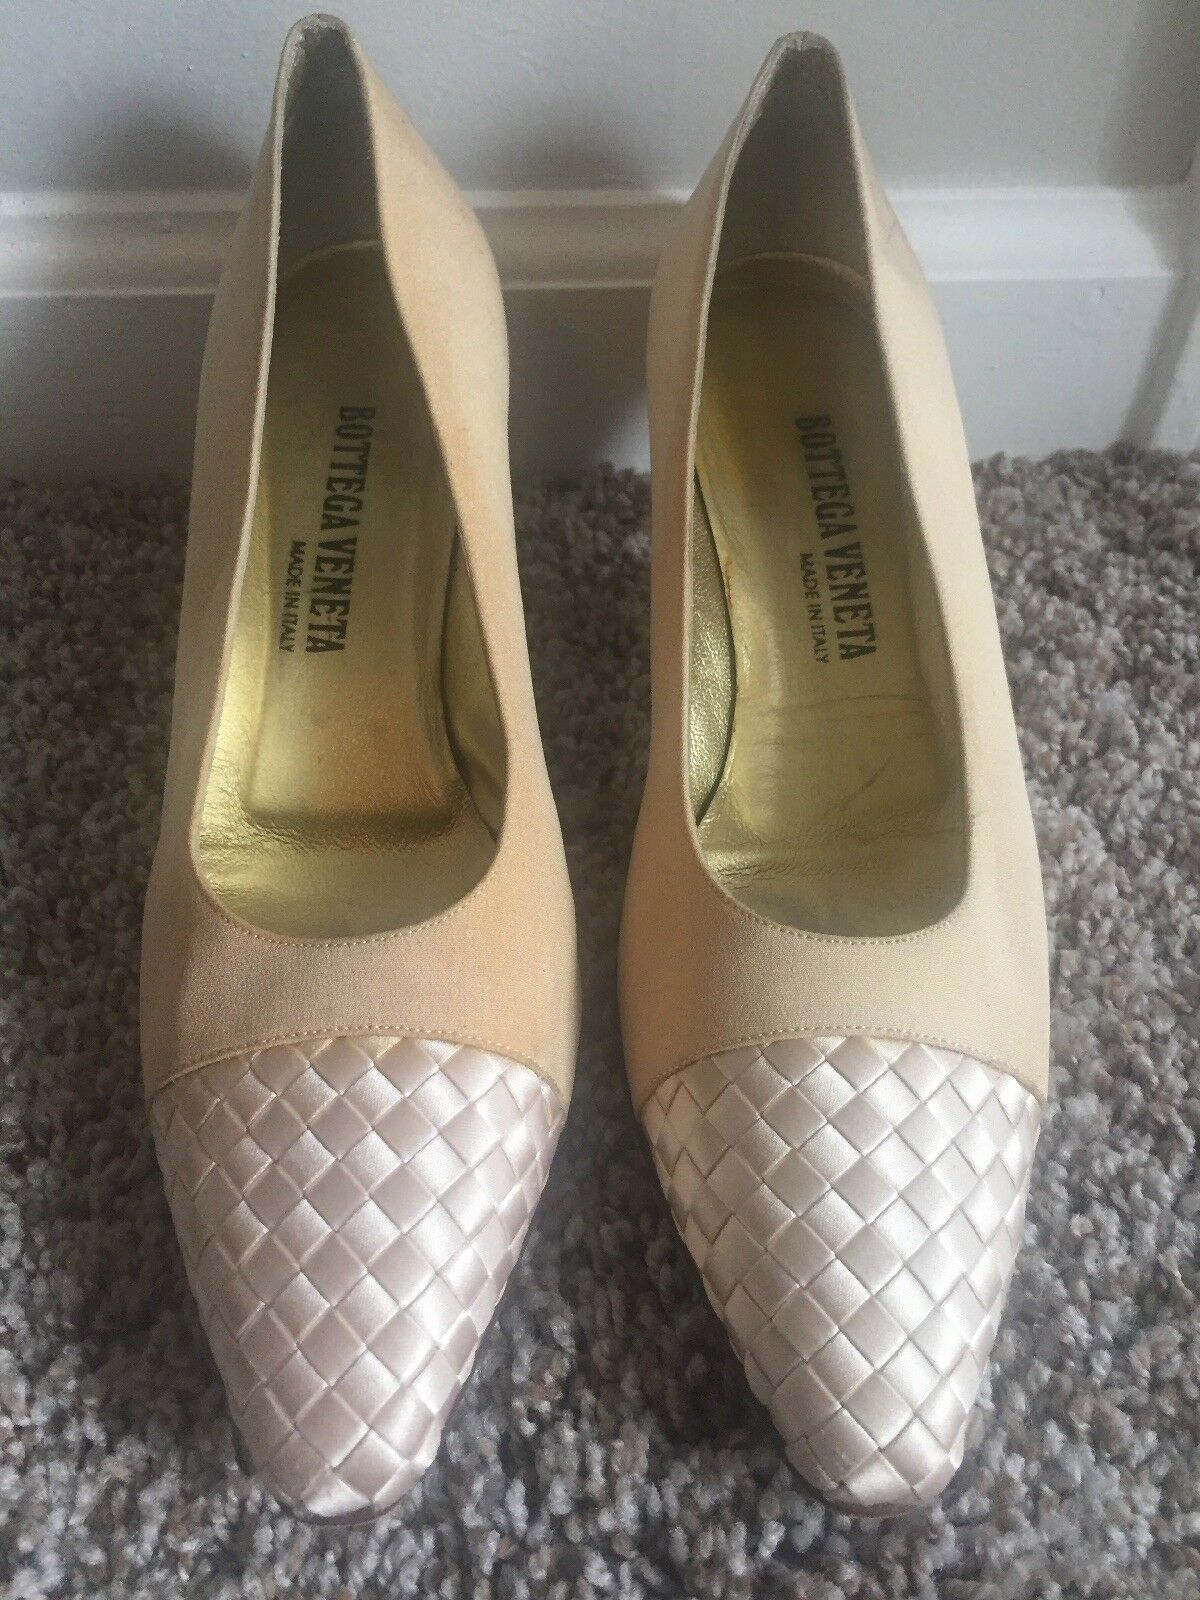 Bottega Veneta Pale Yellow Yellow Yellow gold Silk Pumps Heels shoes Woven Toe size 9.5B e9e2e2